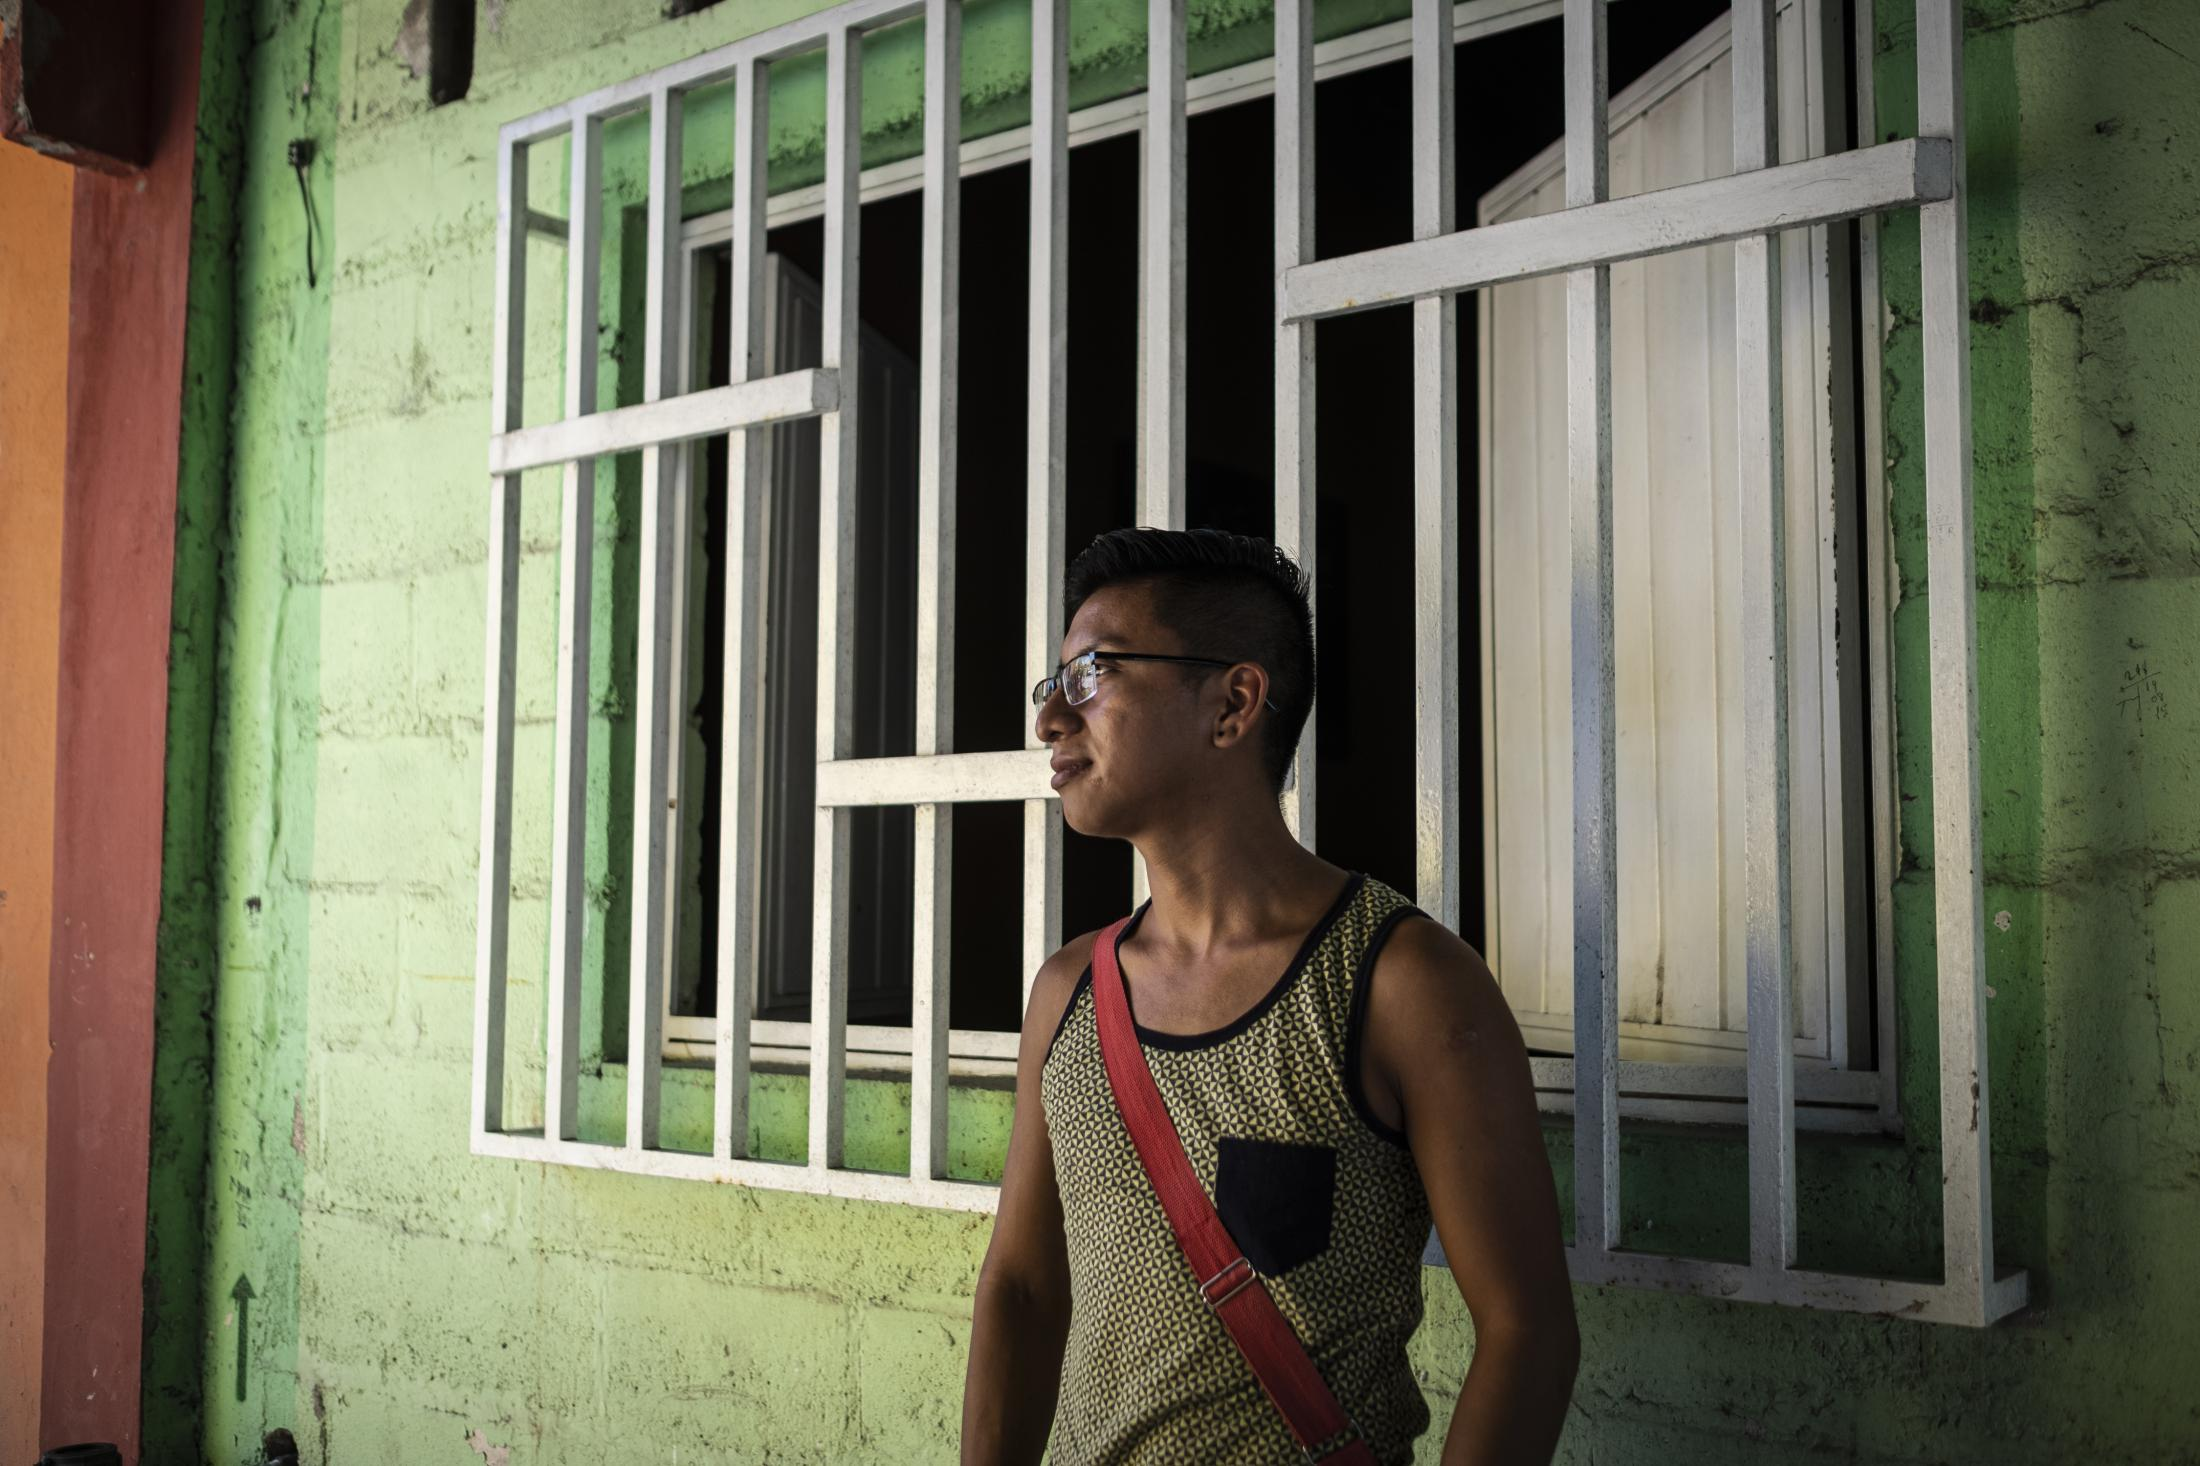 Art and Documentary Photography - Loading LGBTQ_MIGRANTS.2-11.jpg